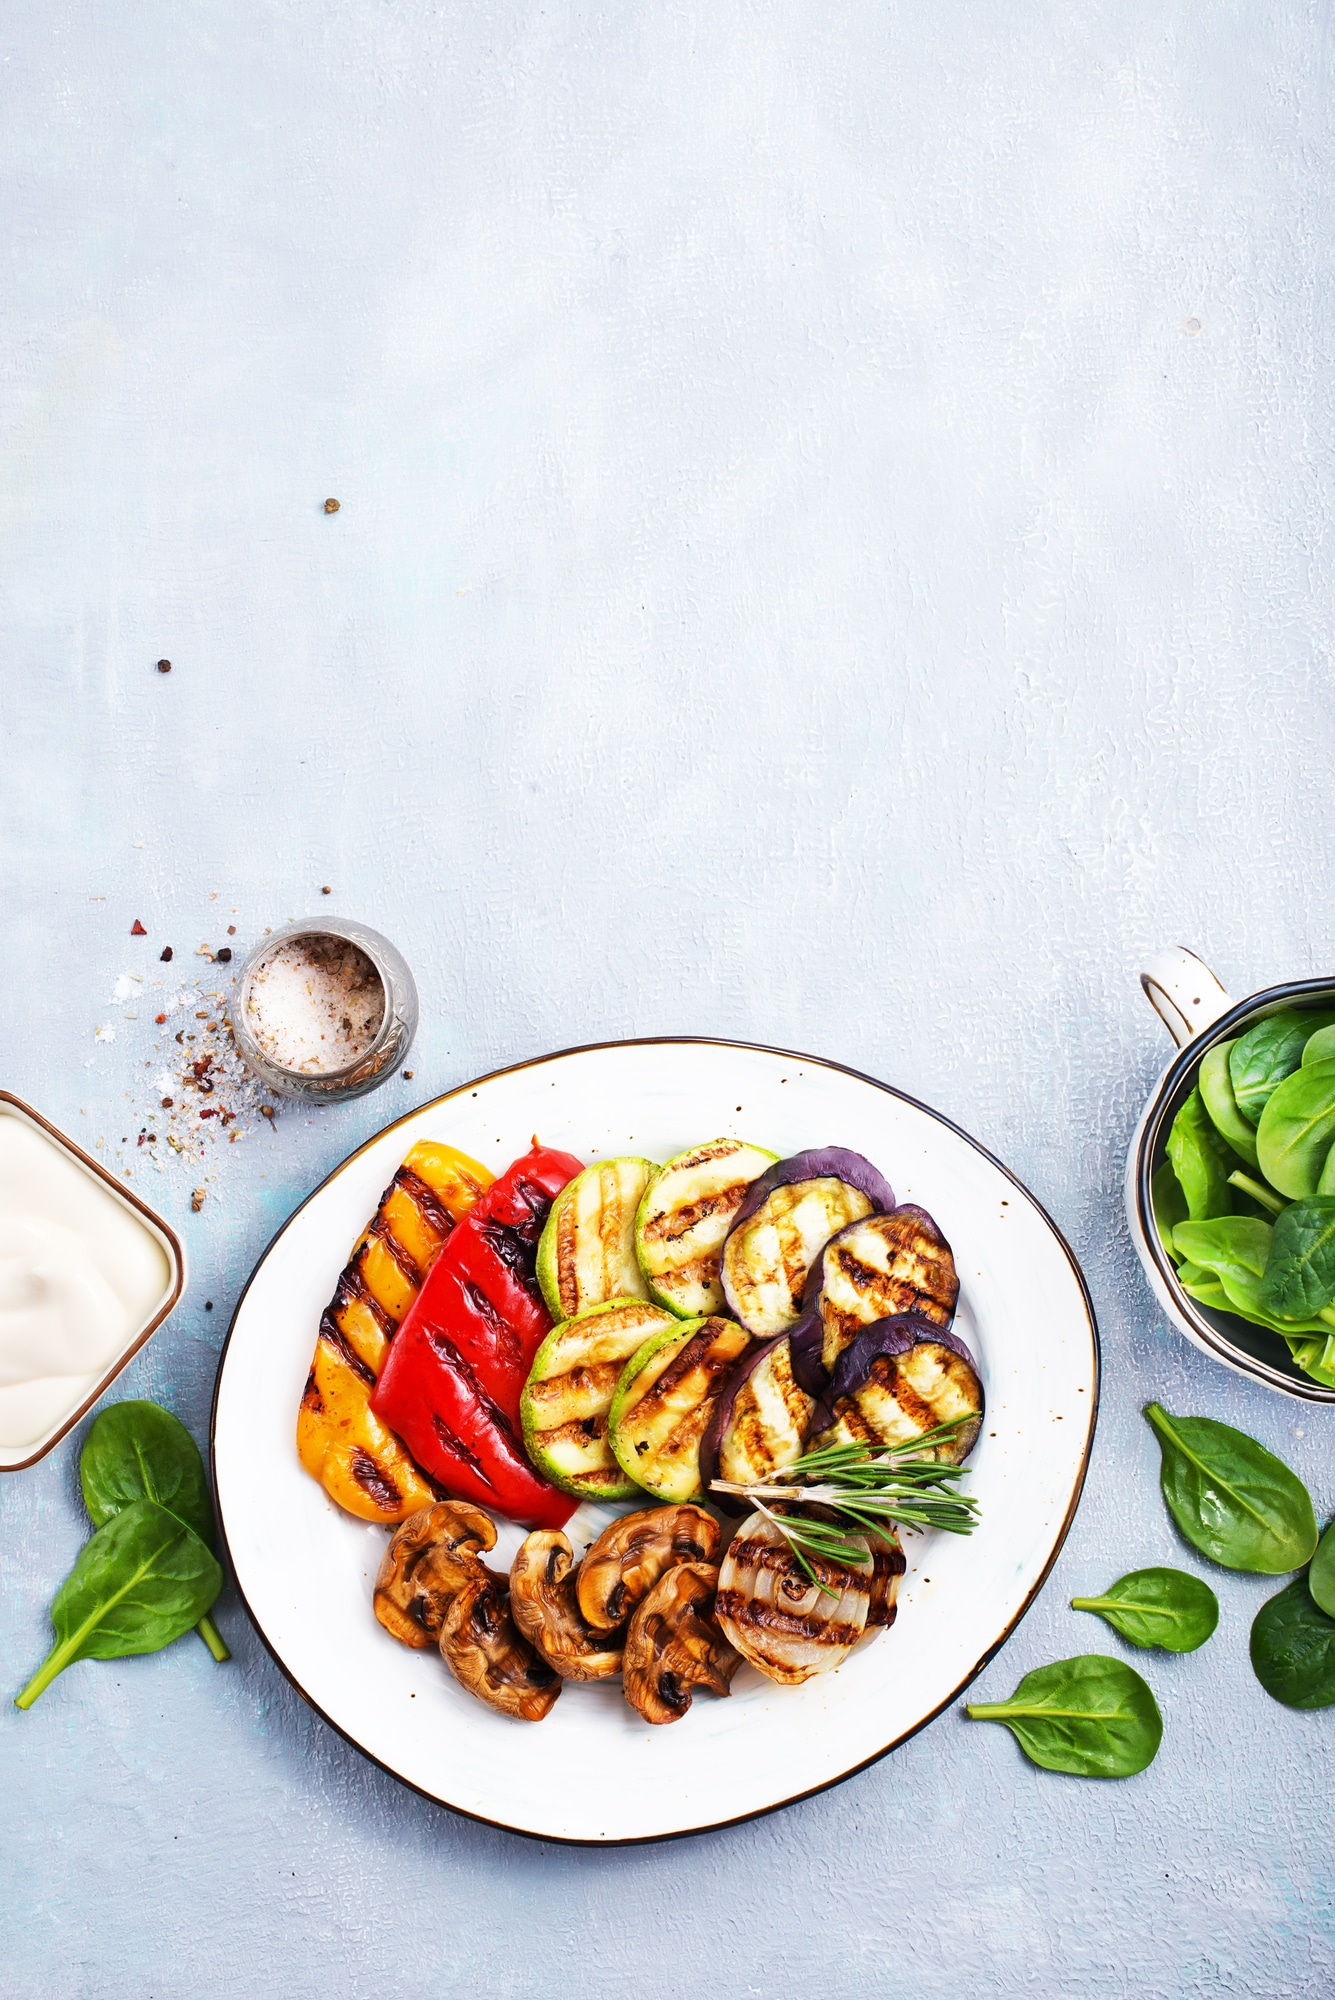 3 Easy Vegan Recipes for Dinner – You Need To Try This Summer